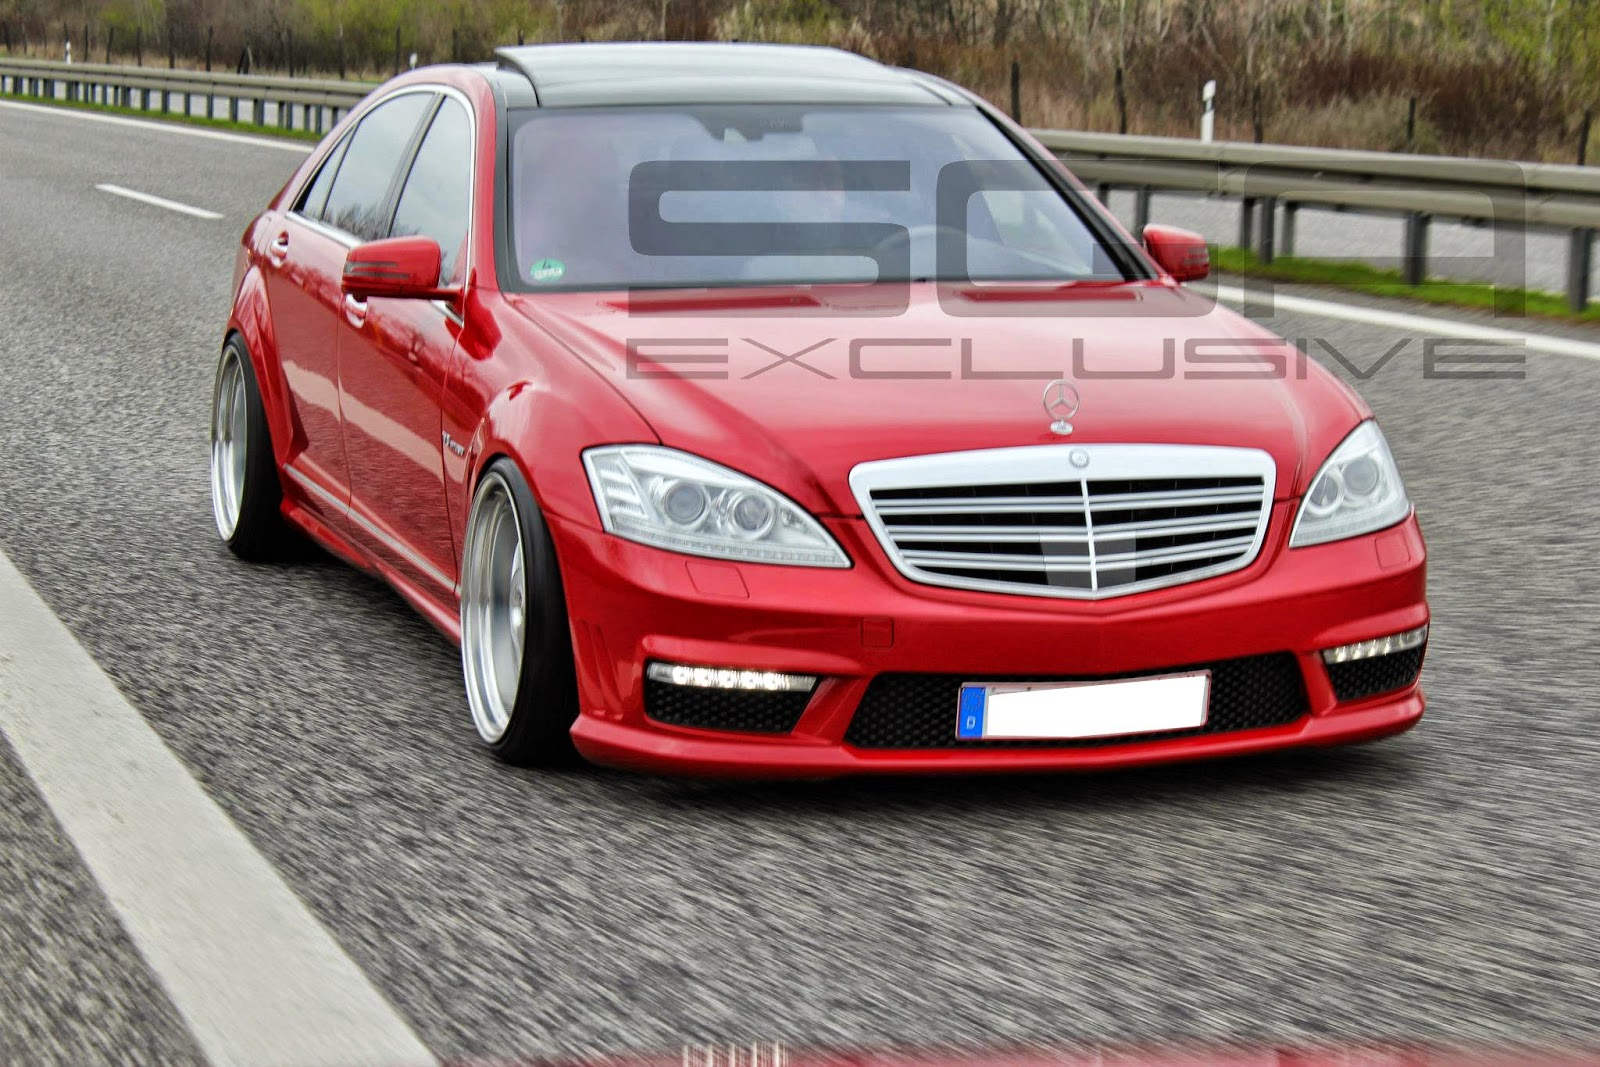 Mercedes s63 amg w221 red vip on mae wheels benztuning for Mercedes benz red